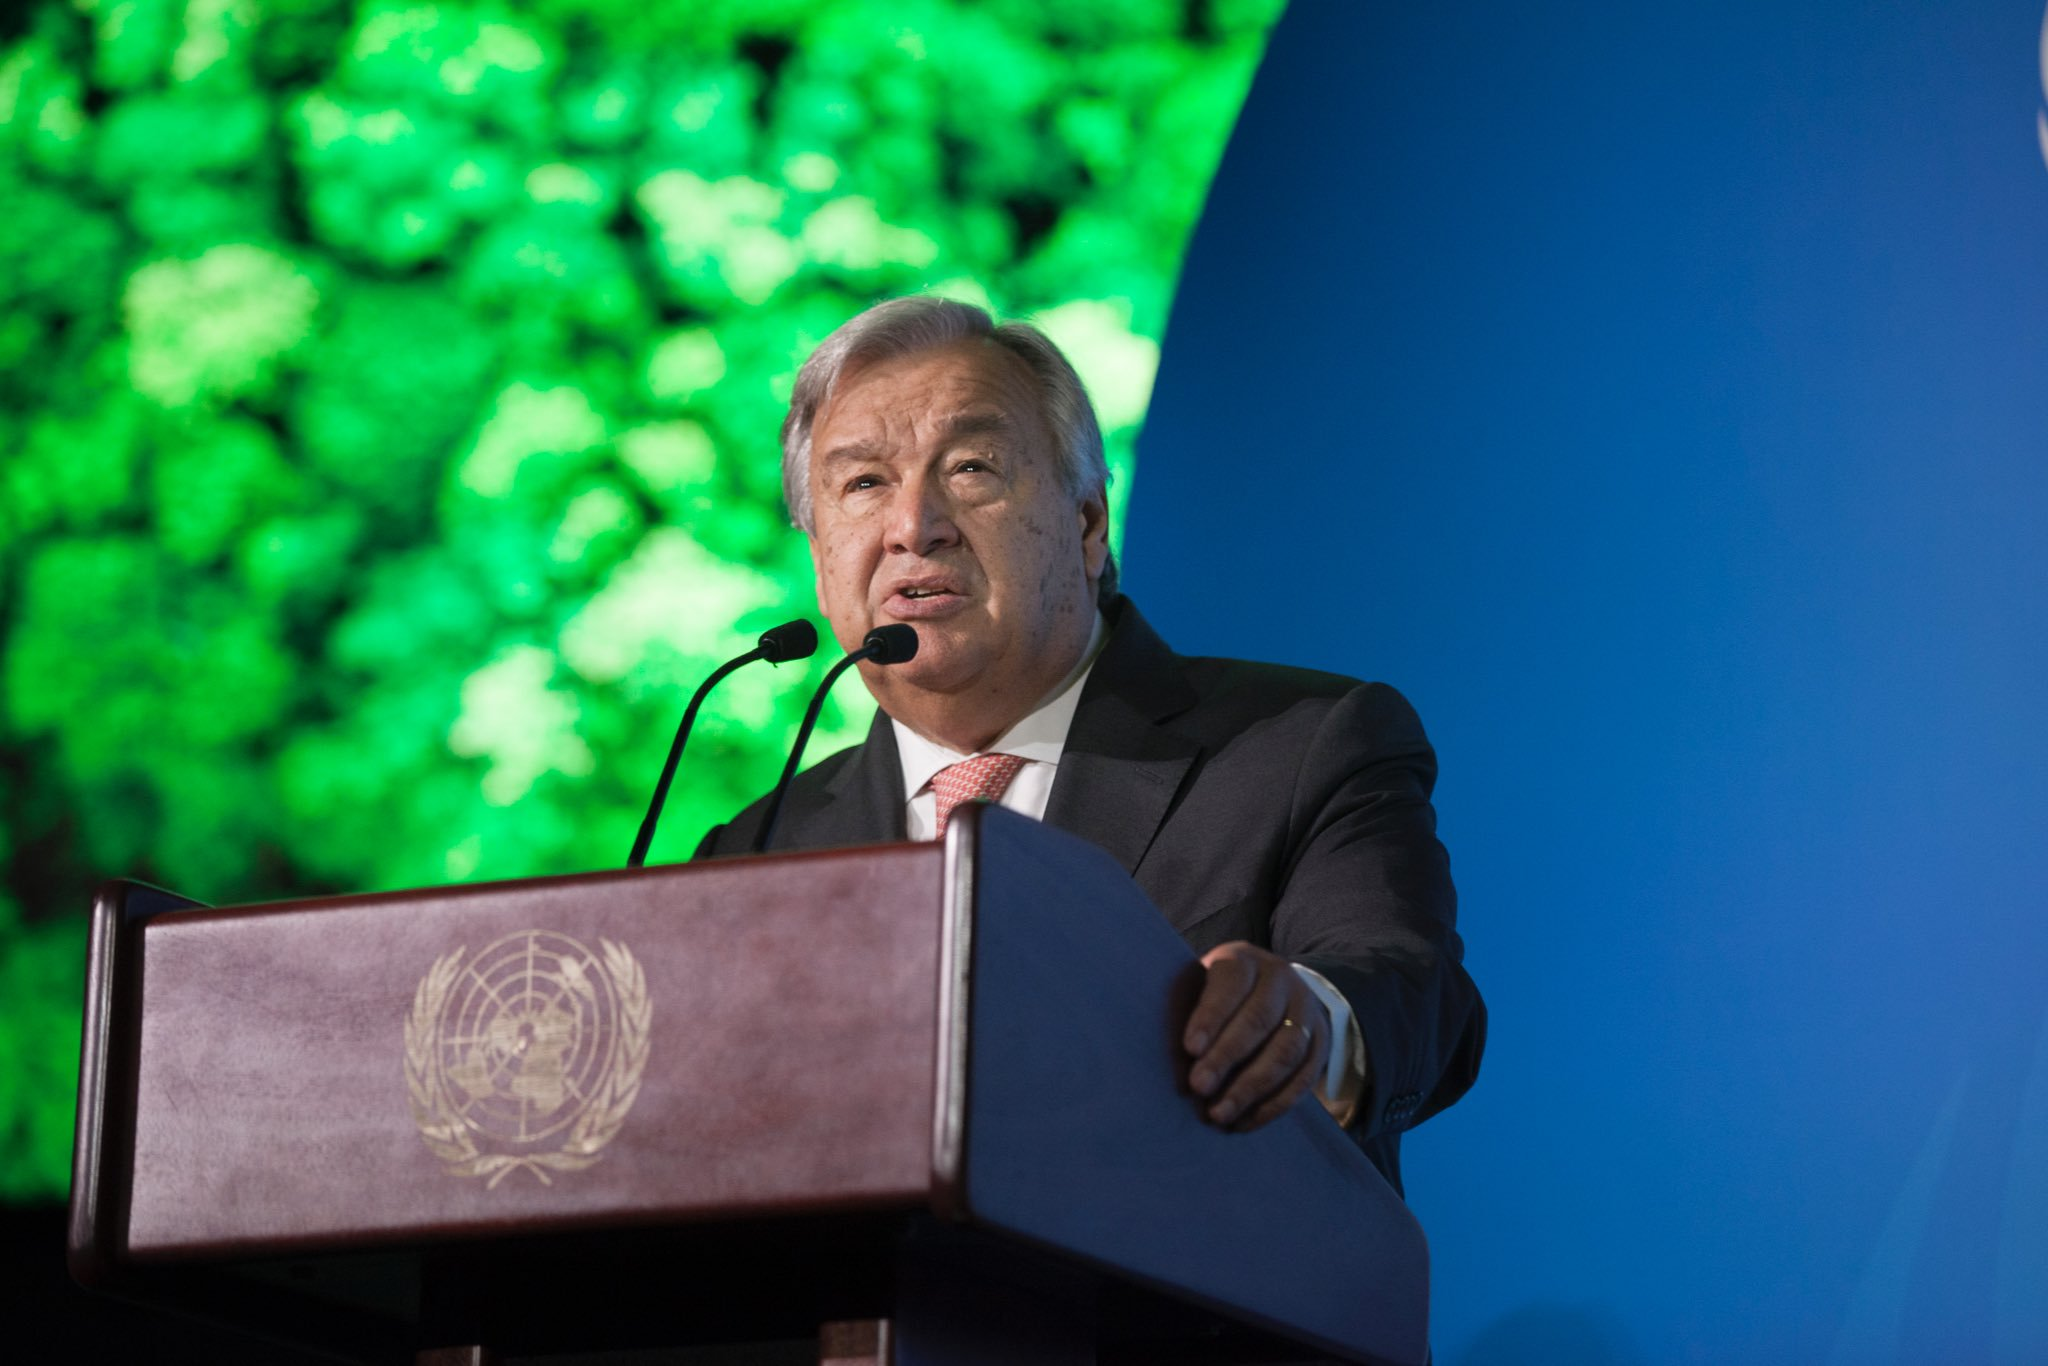 UN Secretary General António Guterres speaking at the UN Climate Summit. Photo courtesy: Twitter/@antonioguterres